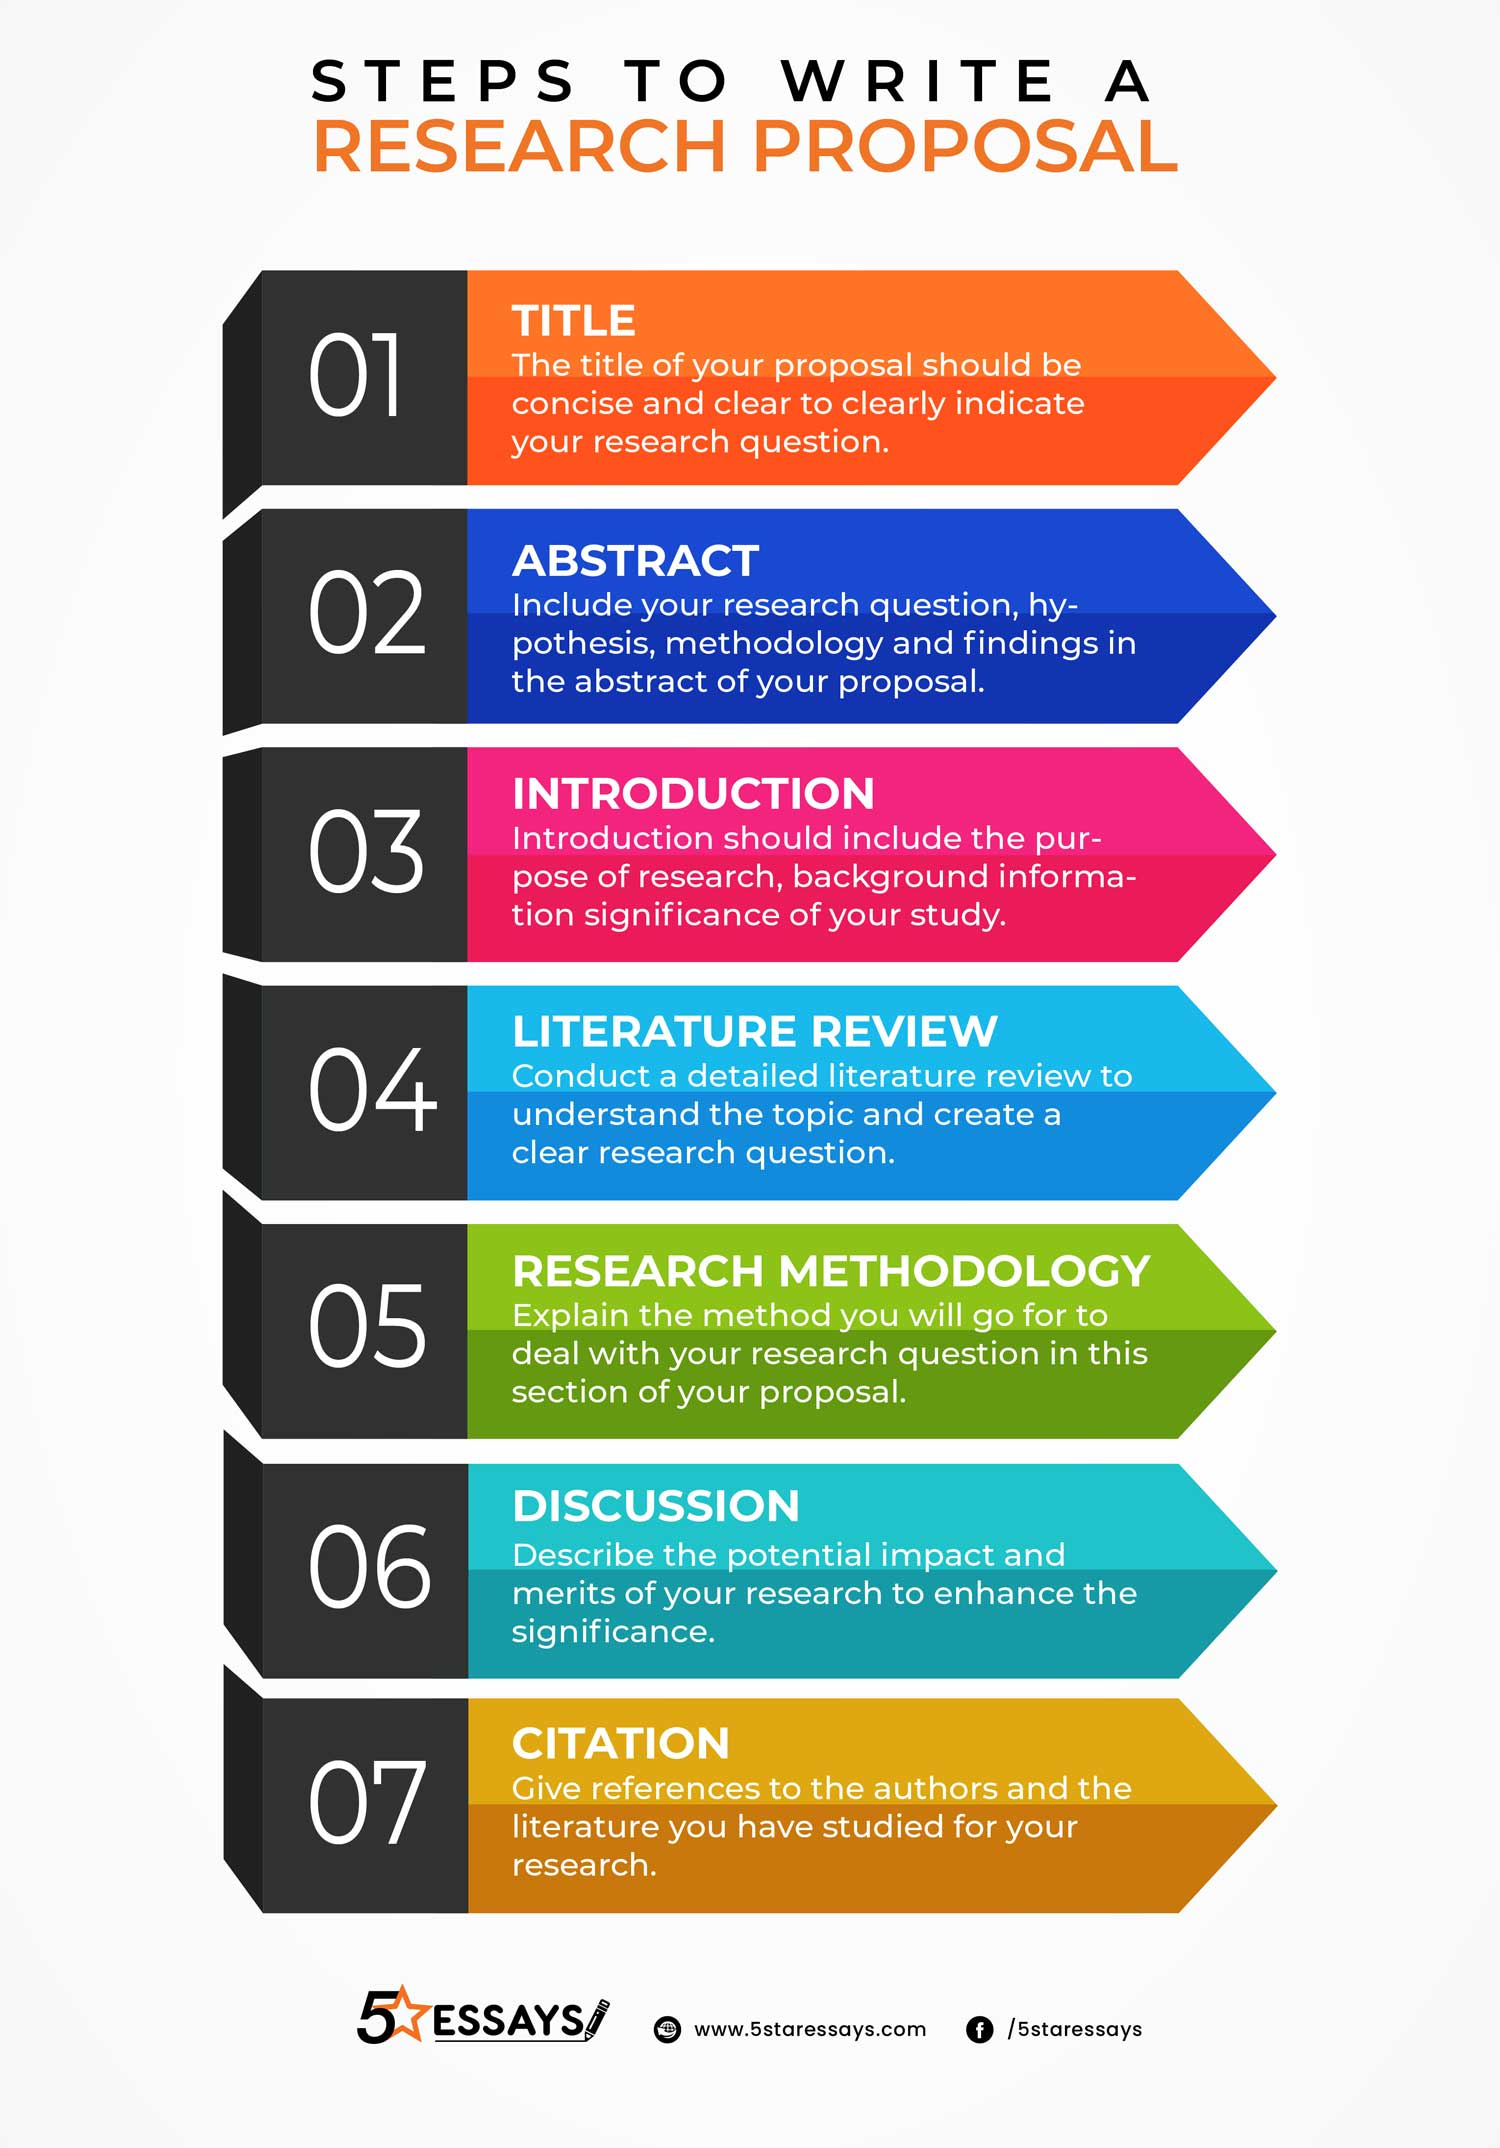 Steps To Write A Research Proposal